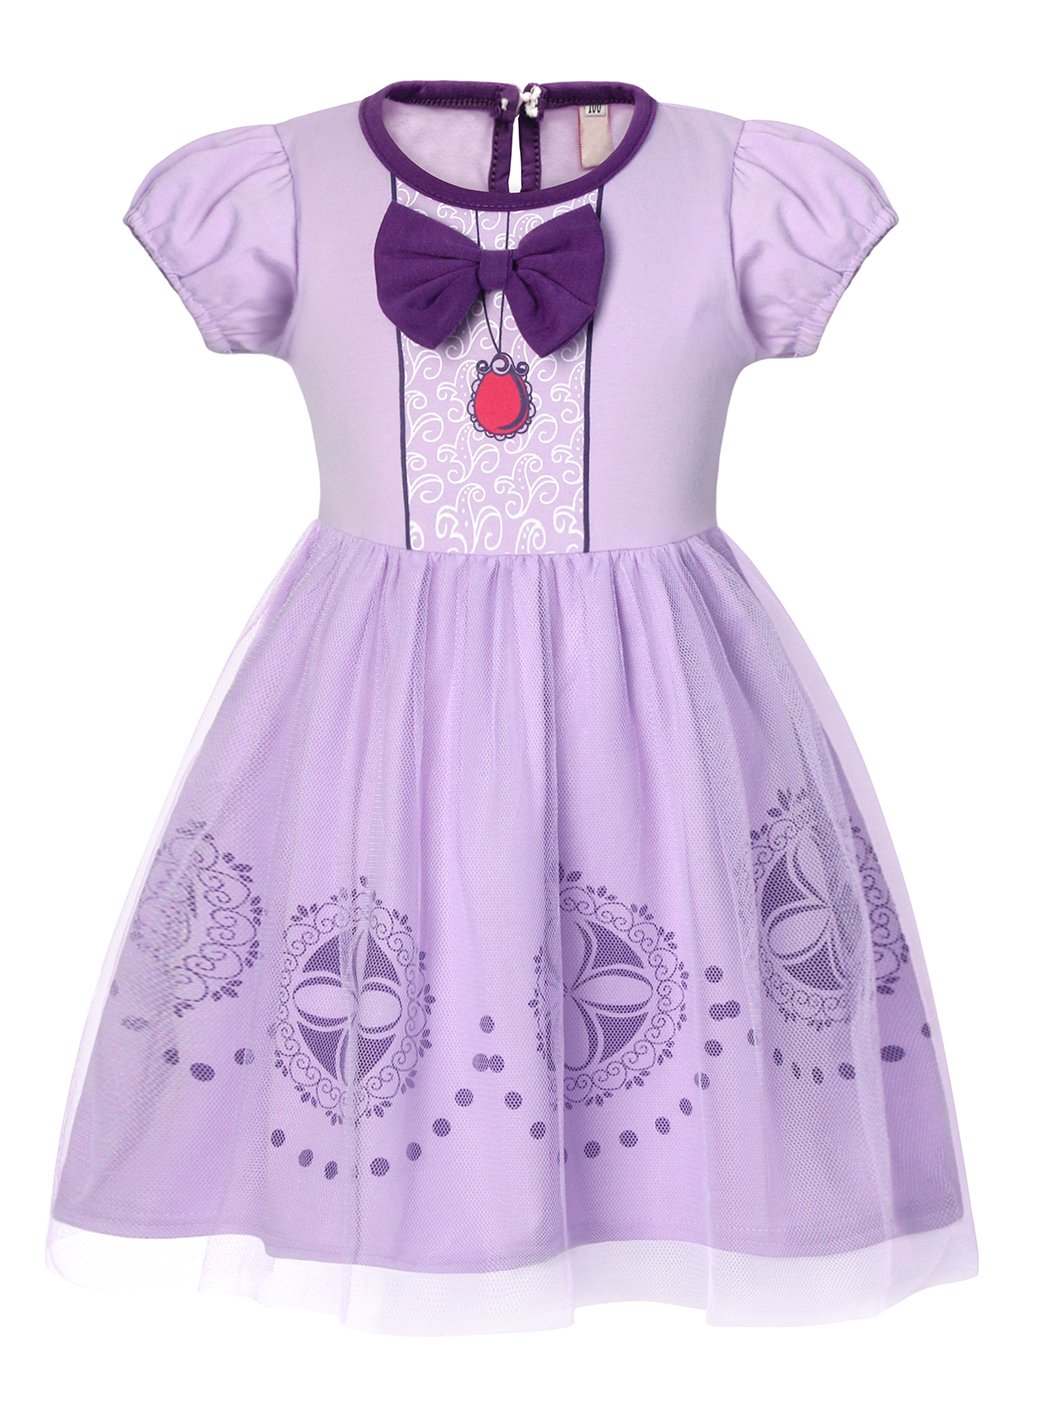 HenzWorld Sofia Dress Costume Girls Outfit Sleepwear Halloween Cosplay Party 6t 5-6 Years